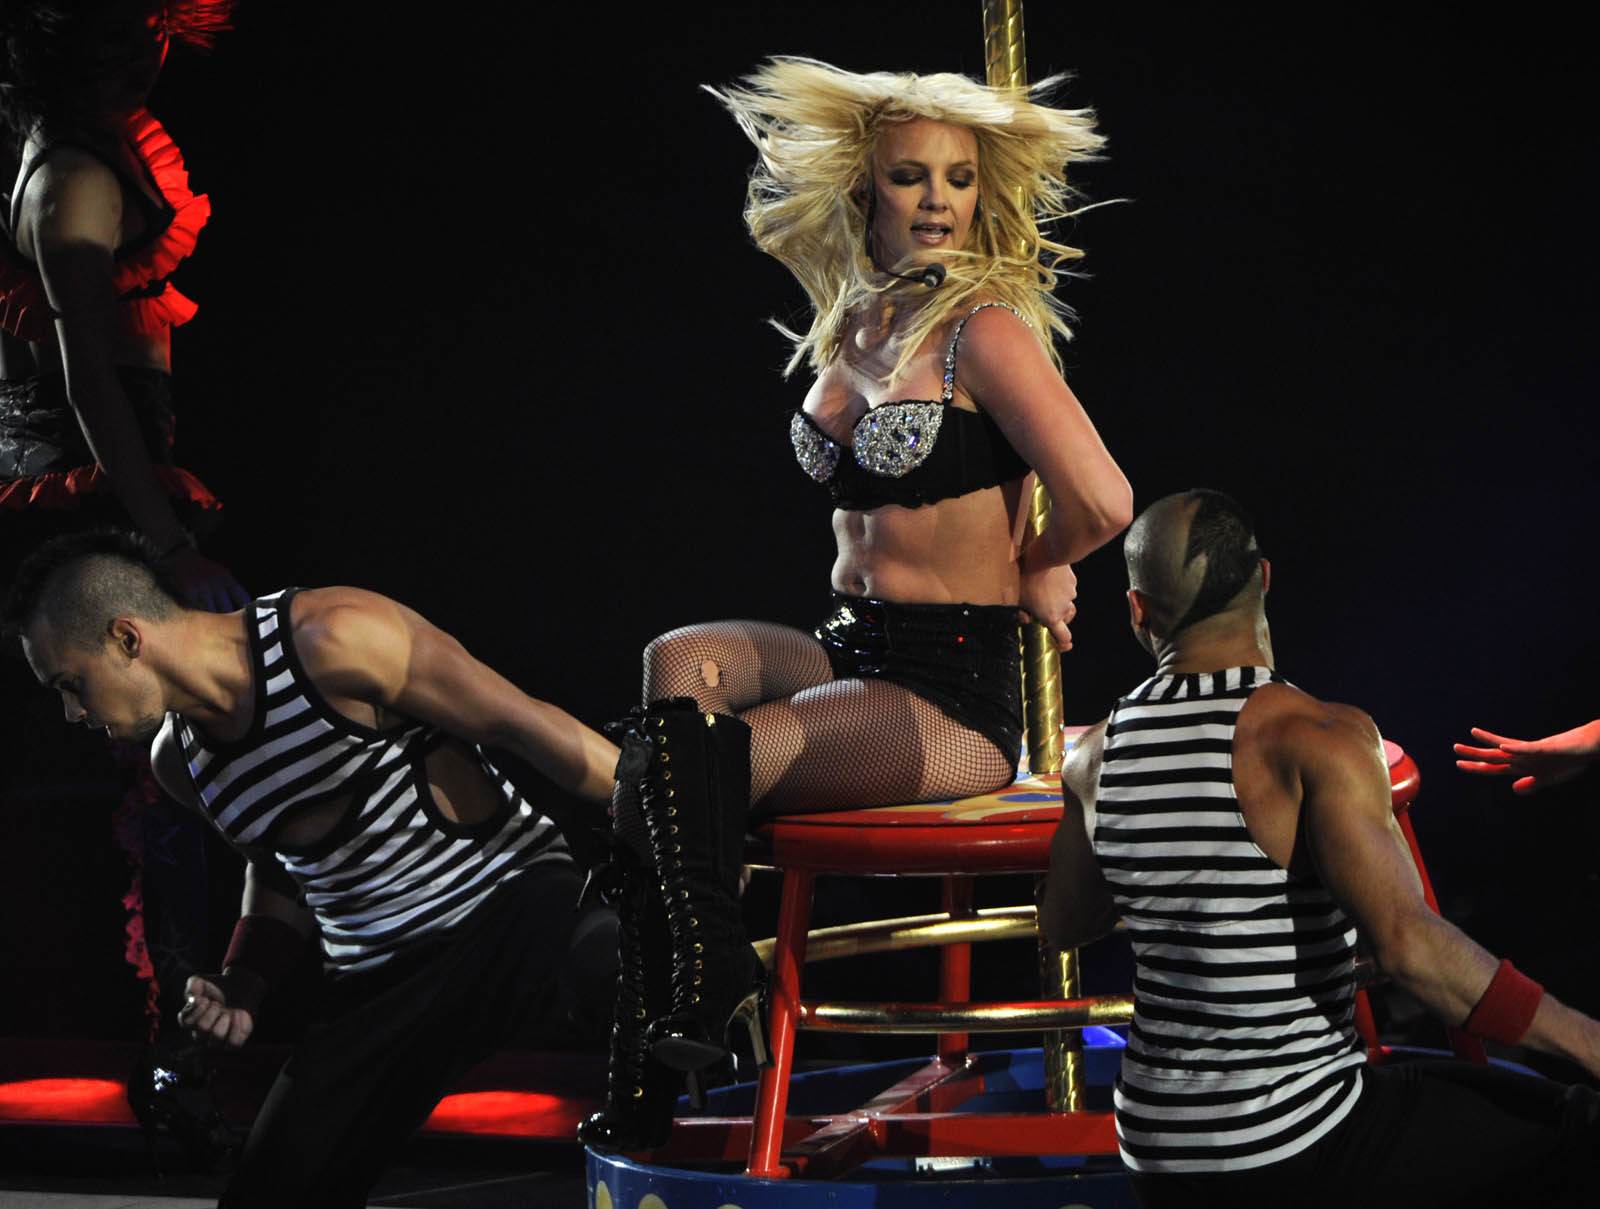 Within a year of being placed in a conservatorship, Spears was back on tour, shown here performing at Washington's Verizon Center in March 2009. (Linda Davidson/The Washington Post)